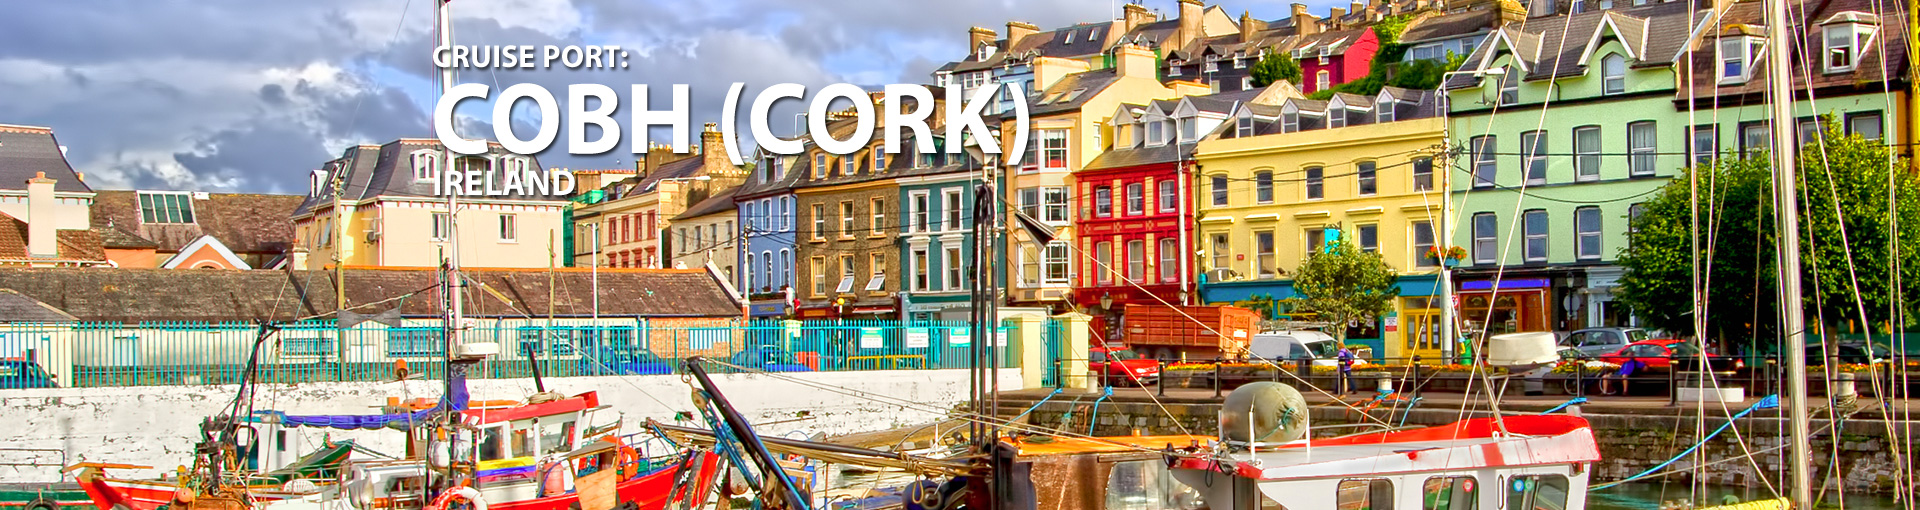 Cruises to Cobh (Cork), Ireland